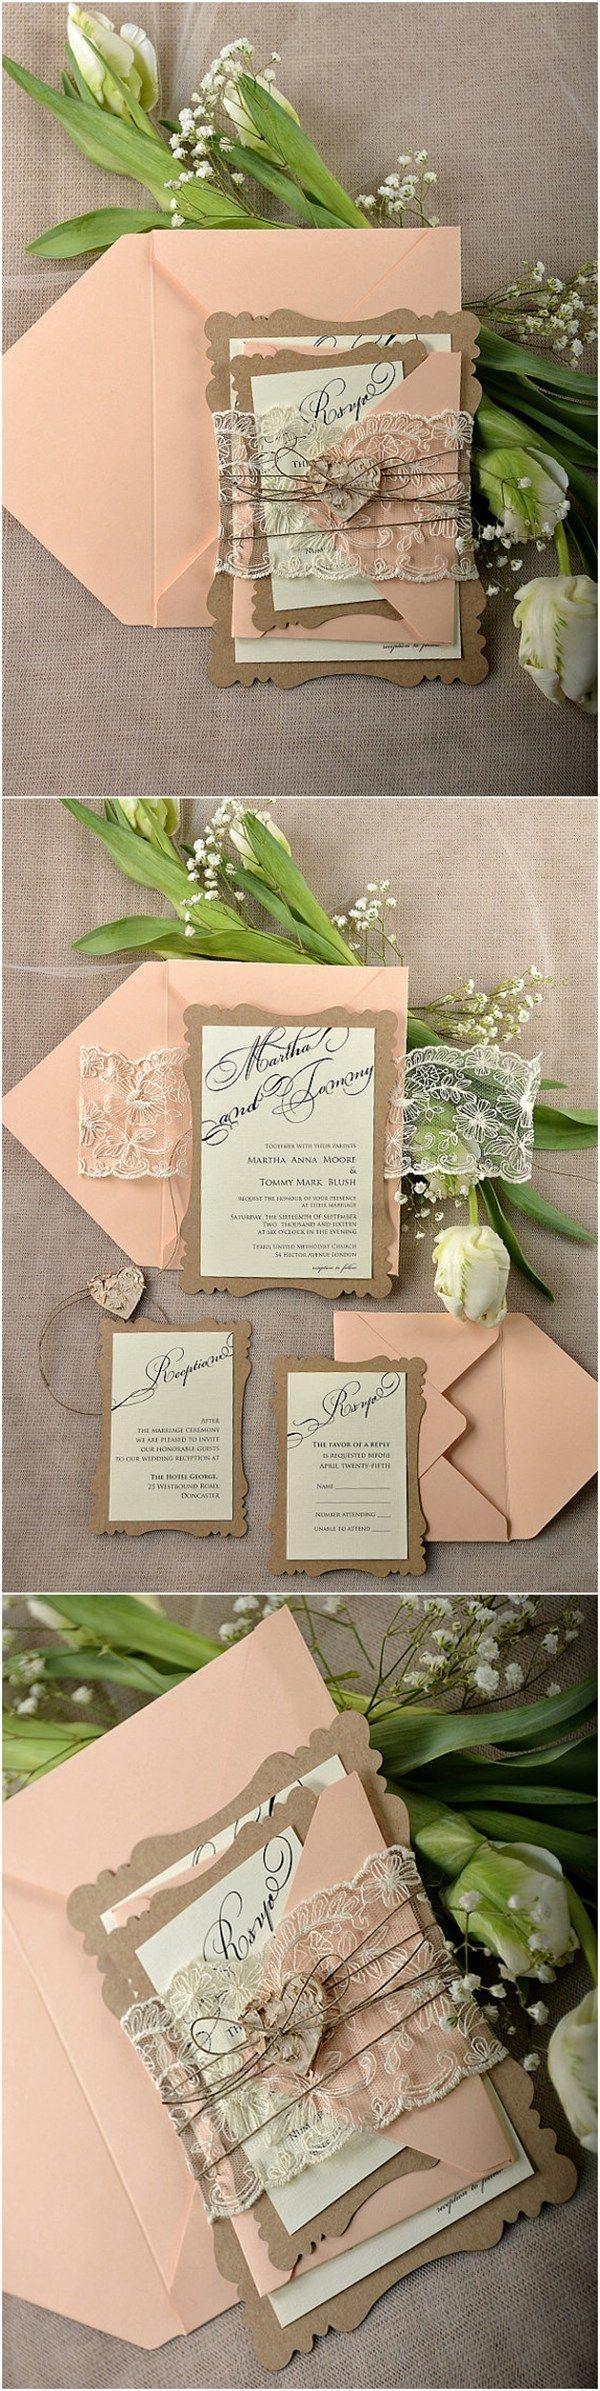 free wedding invitation templates country theme%0A Rustic Eco Peach Lace Laser Cut Wedding Invitation Kits  Deer Pearl  Flowers I love the idea of real lace  especially if you go for a vintage  theme